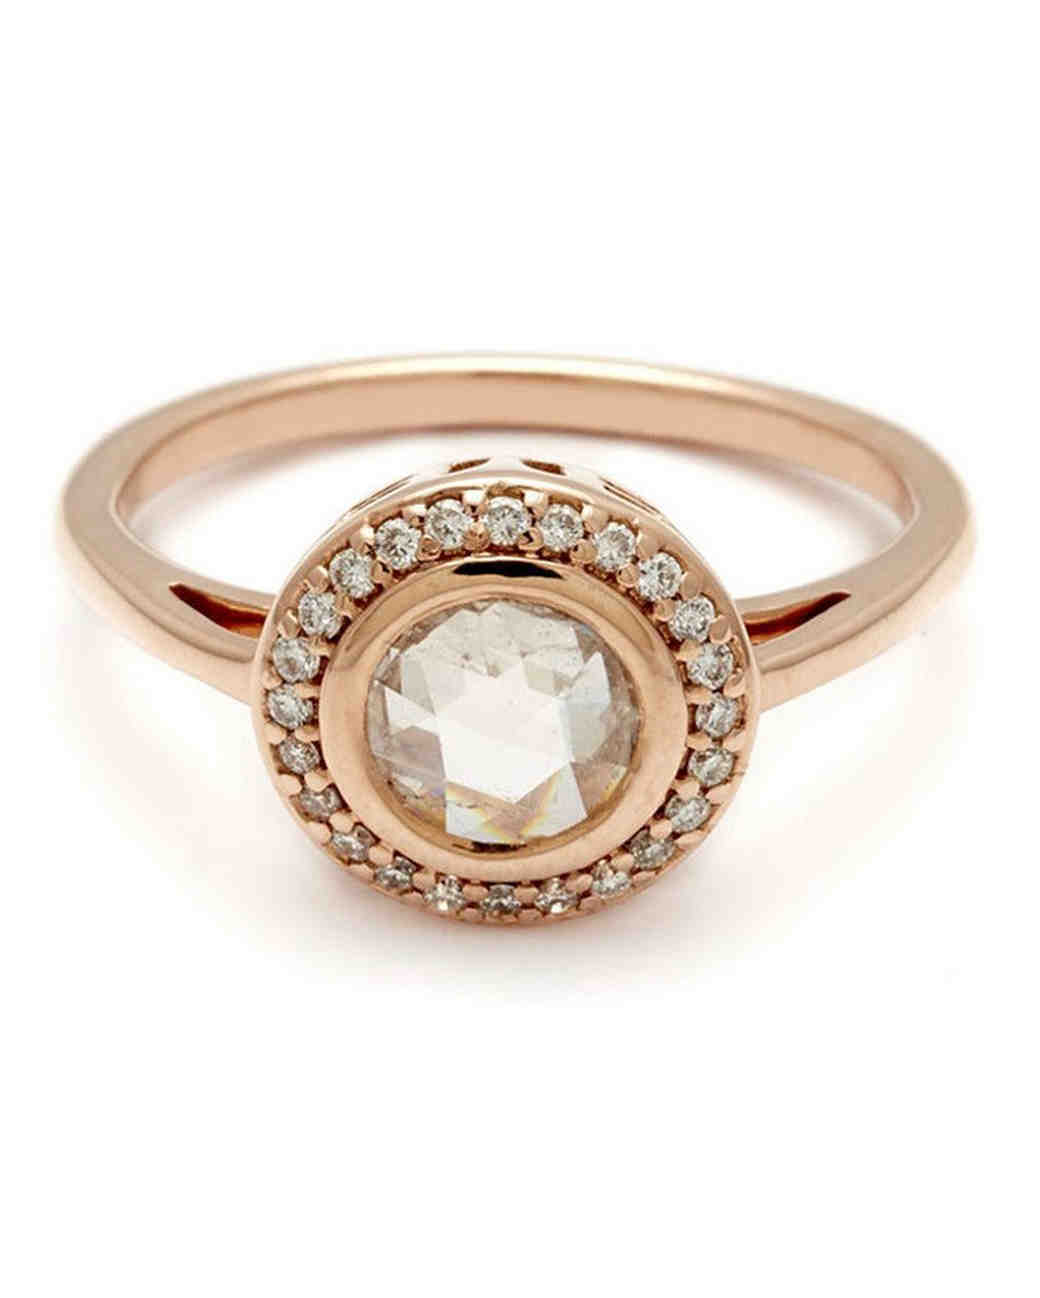 retro bands ring jewellery cheap deco promise gold milgrain diamond moissanite white art under vintage engagement rings